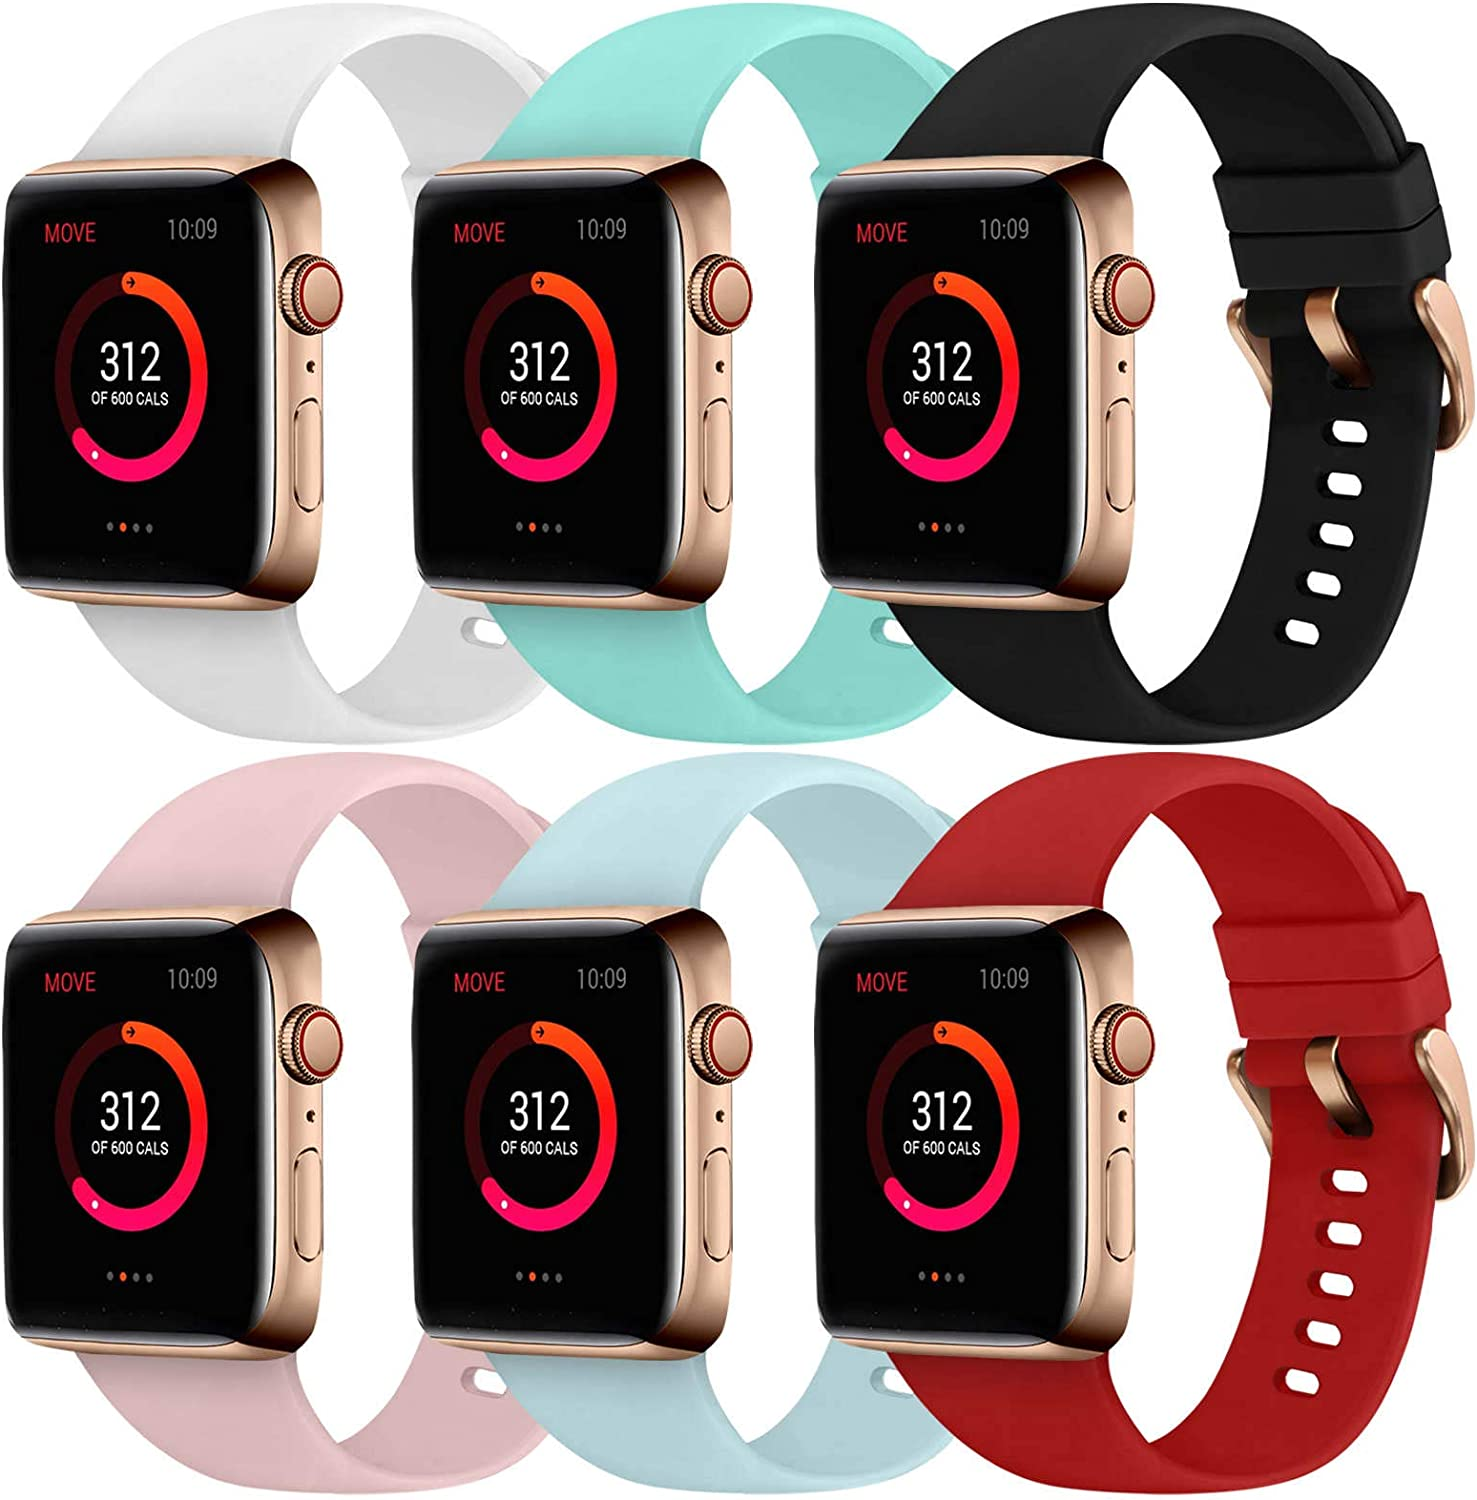 Abincee 6PCS Bands Compatible with Apple Watch 38mm 40mm 42mm 44mm with Rose Gold Buckle,replacement band for iWatch Series 6/5/4/3/2/1 (Black/White/Red/Sand Pink/Turquoise/Teal, 38mm/40mm)